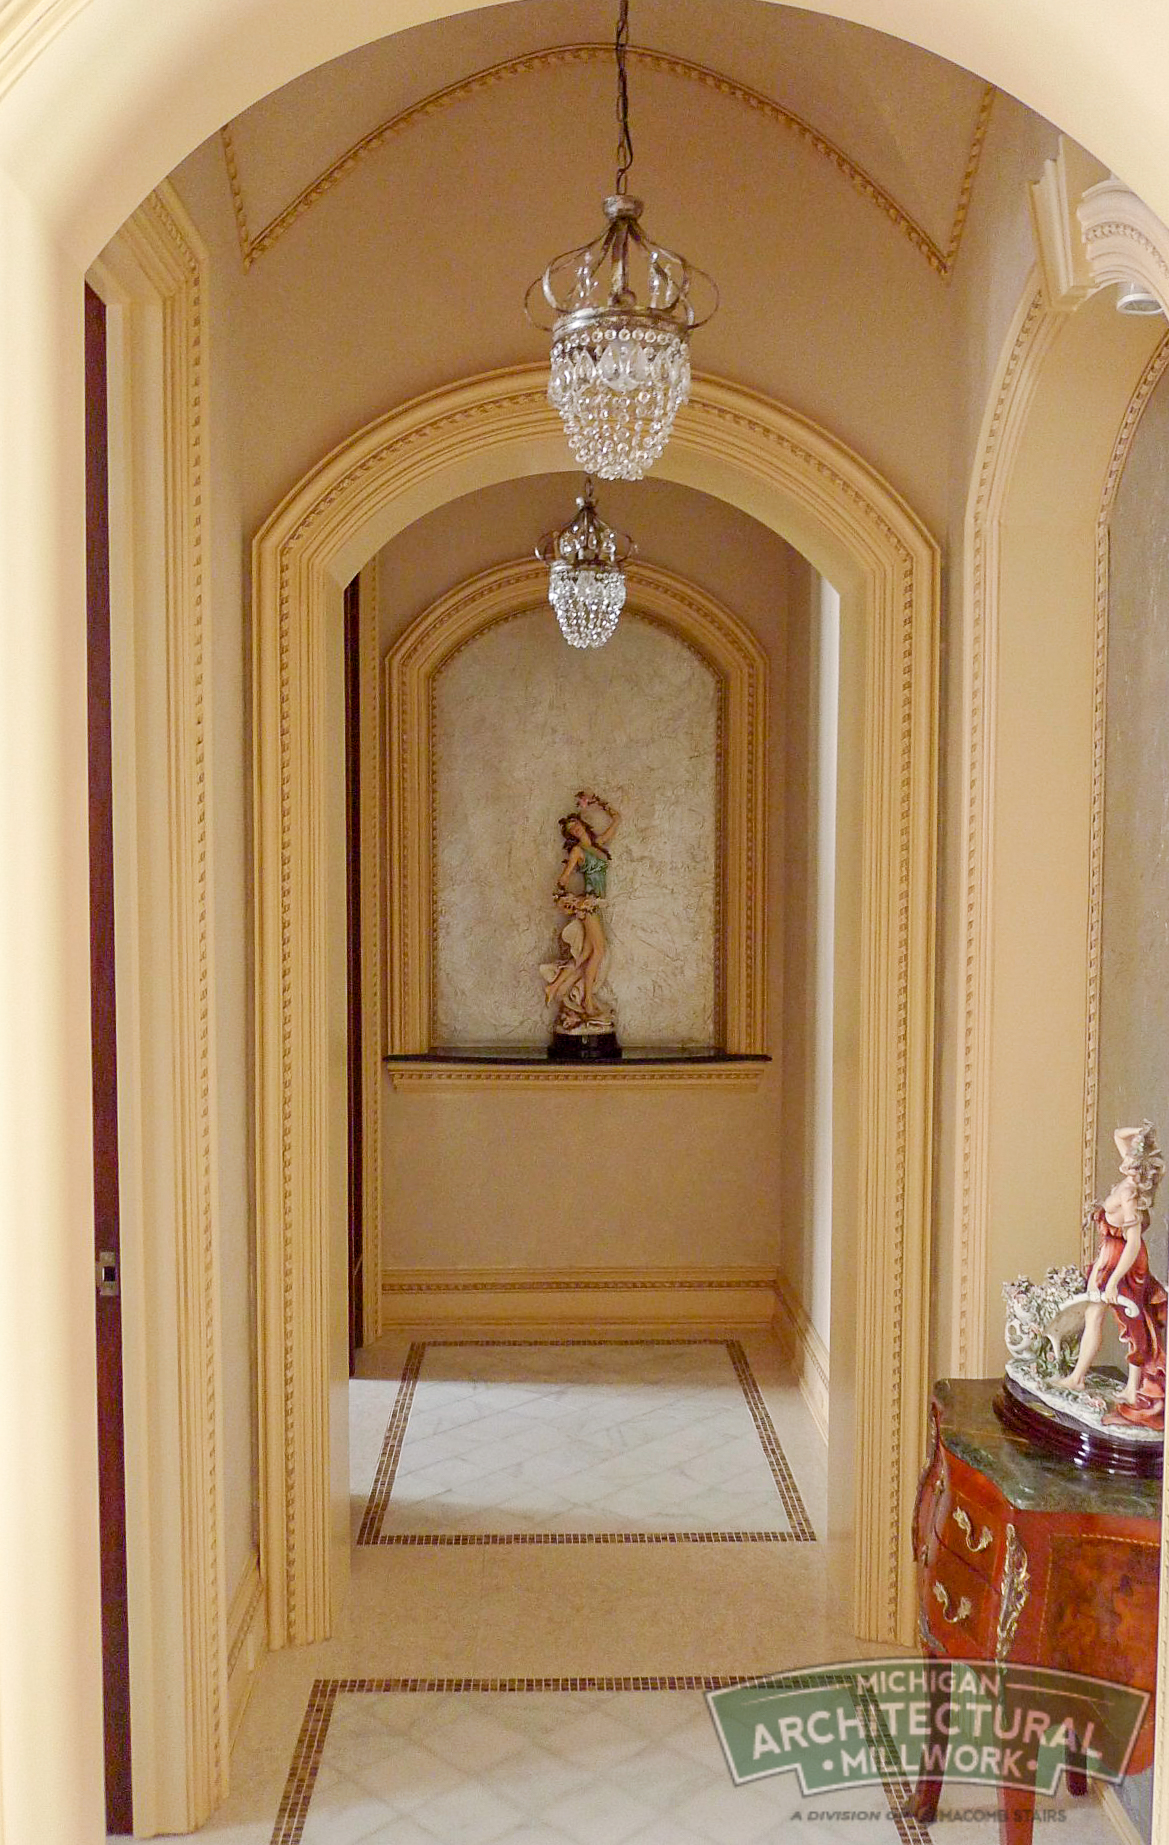 Michigan Architectural Millwork- Moulding and Millwork Photo-157.jpg